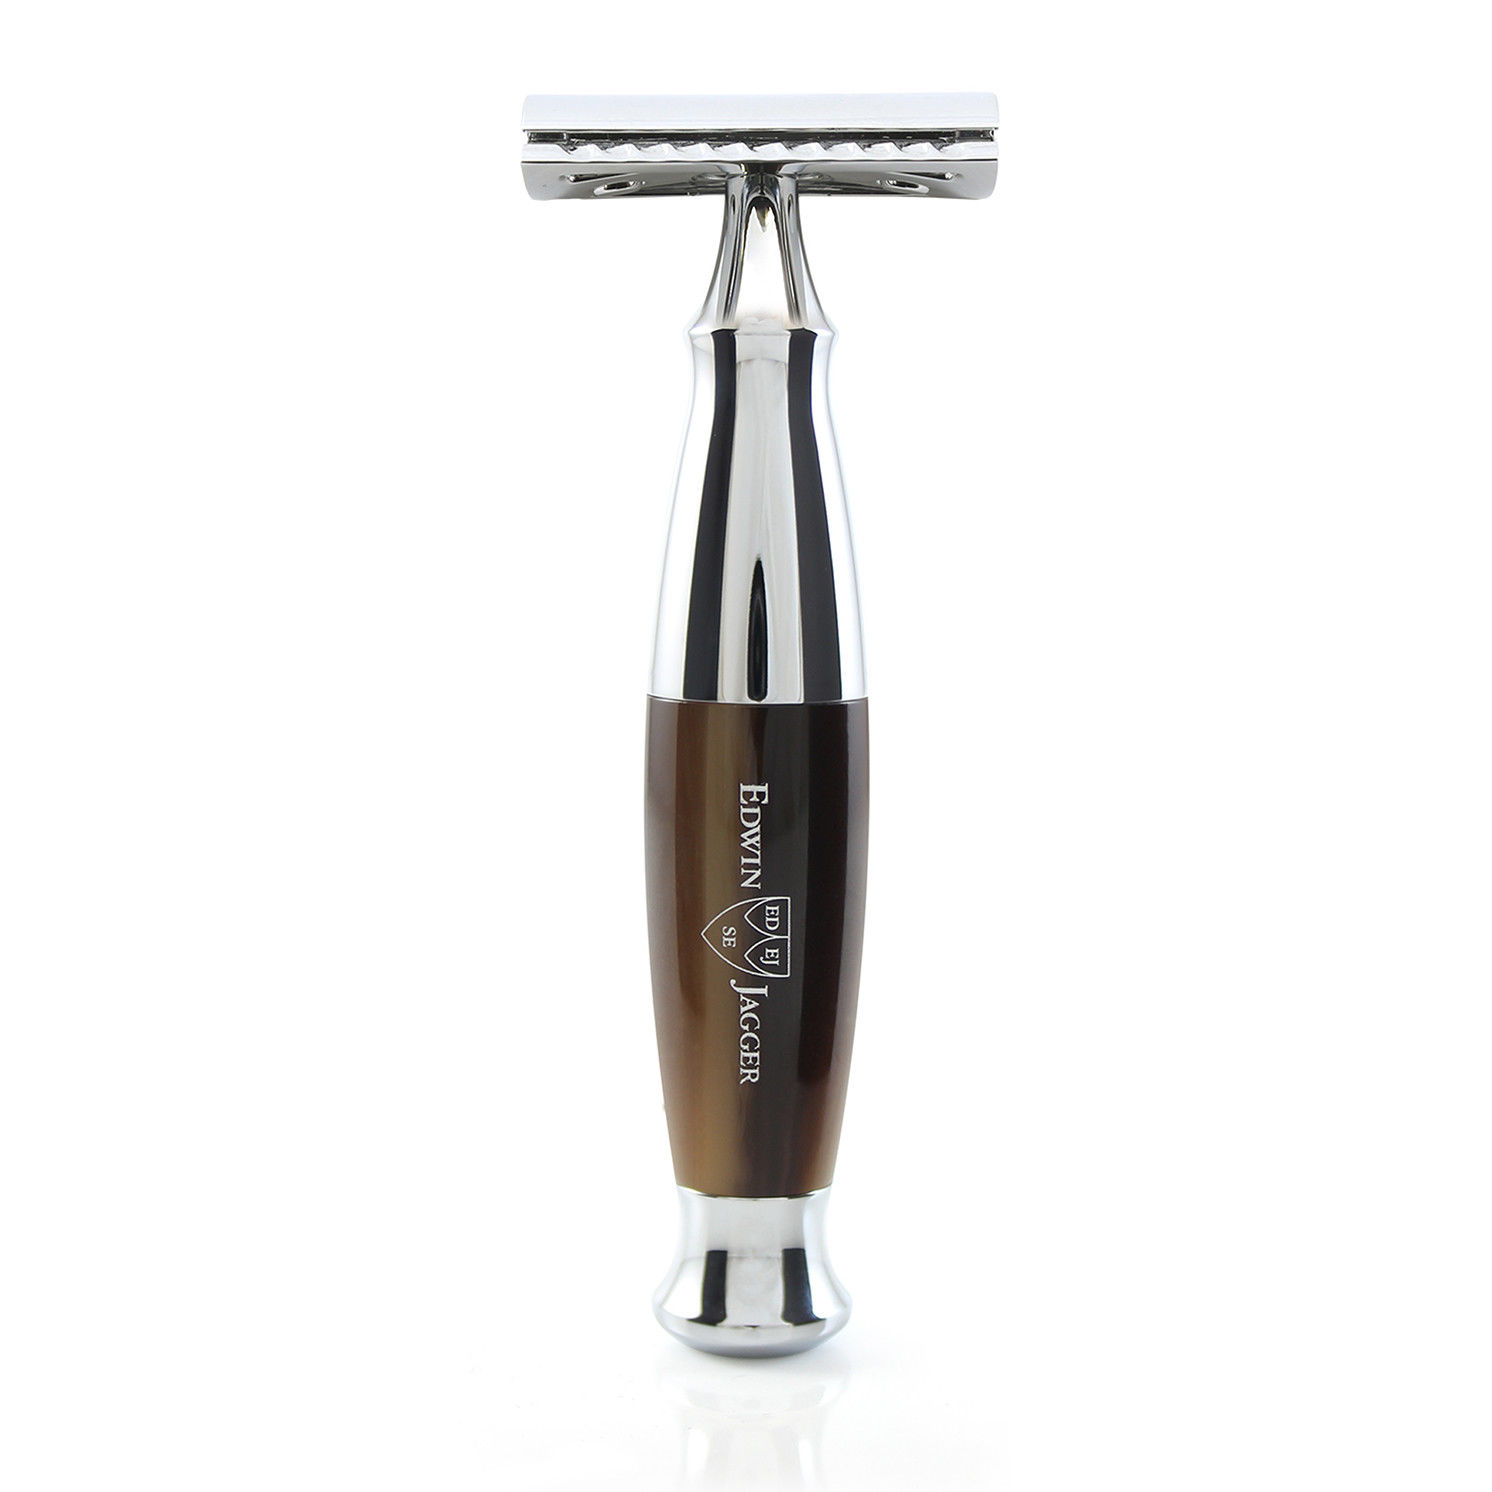 Edwin Jagger – Imitation Brown Horn and Chrome DE Safety Razor in Gift Box